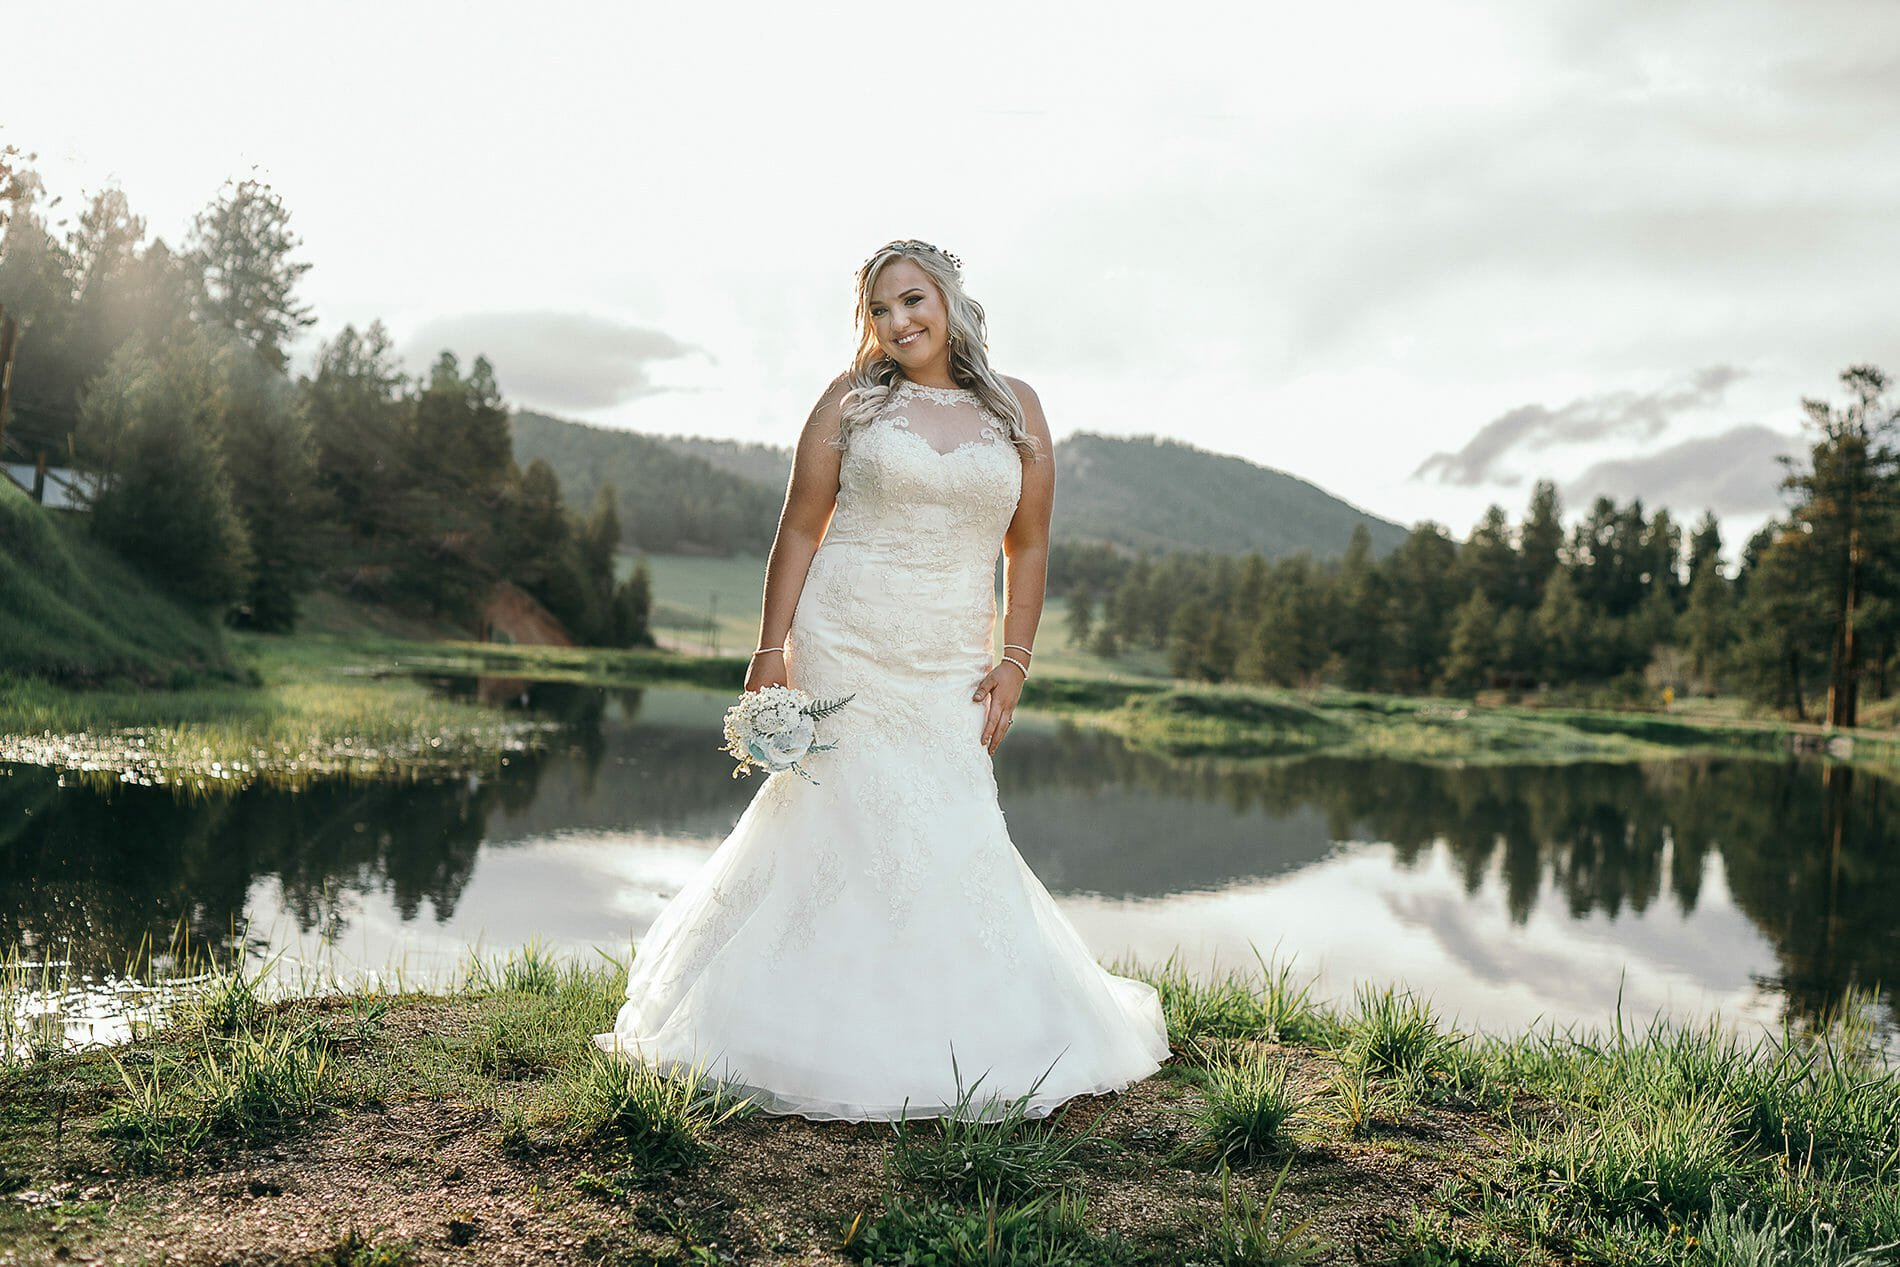 Outdoor Wedding in Colorado - Bride with Mountains